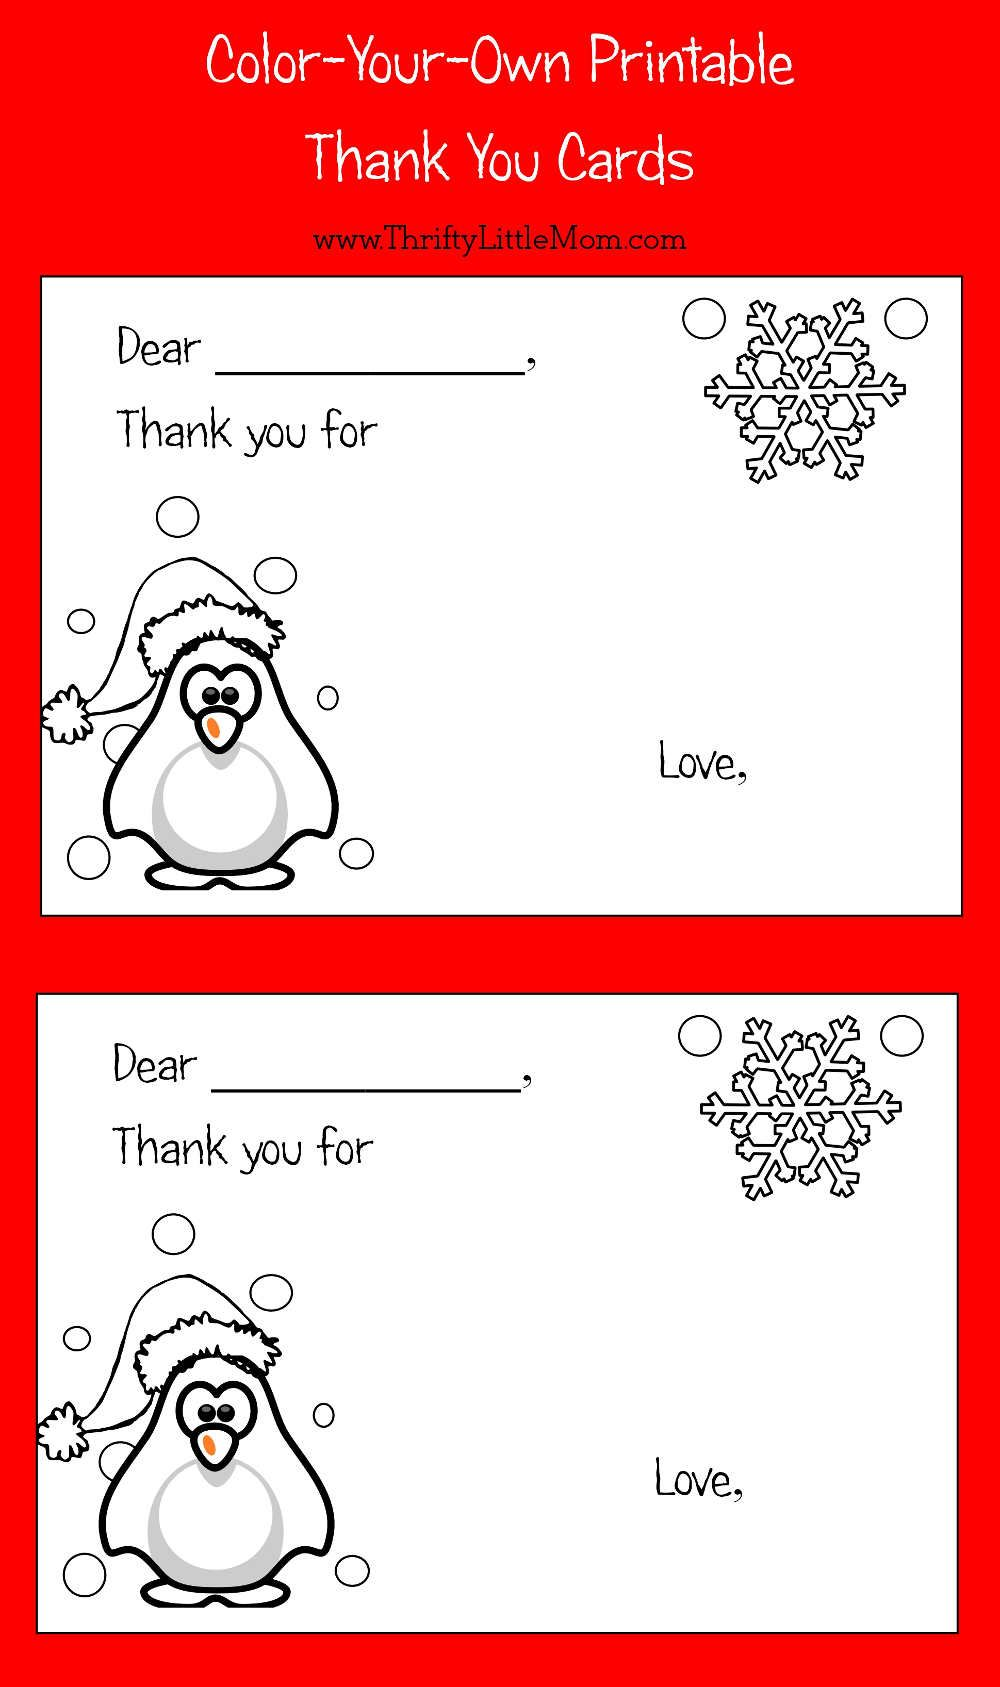 Color cards free - Cards Kids Free Printable Color